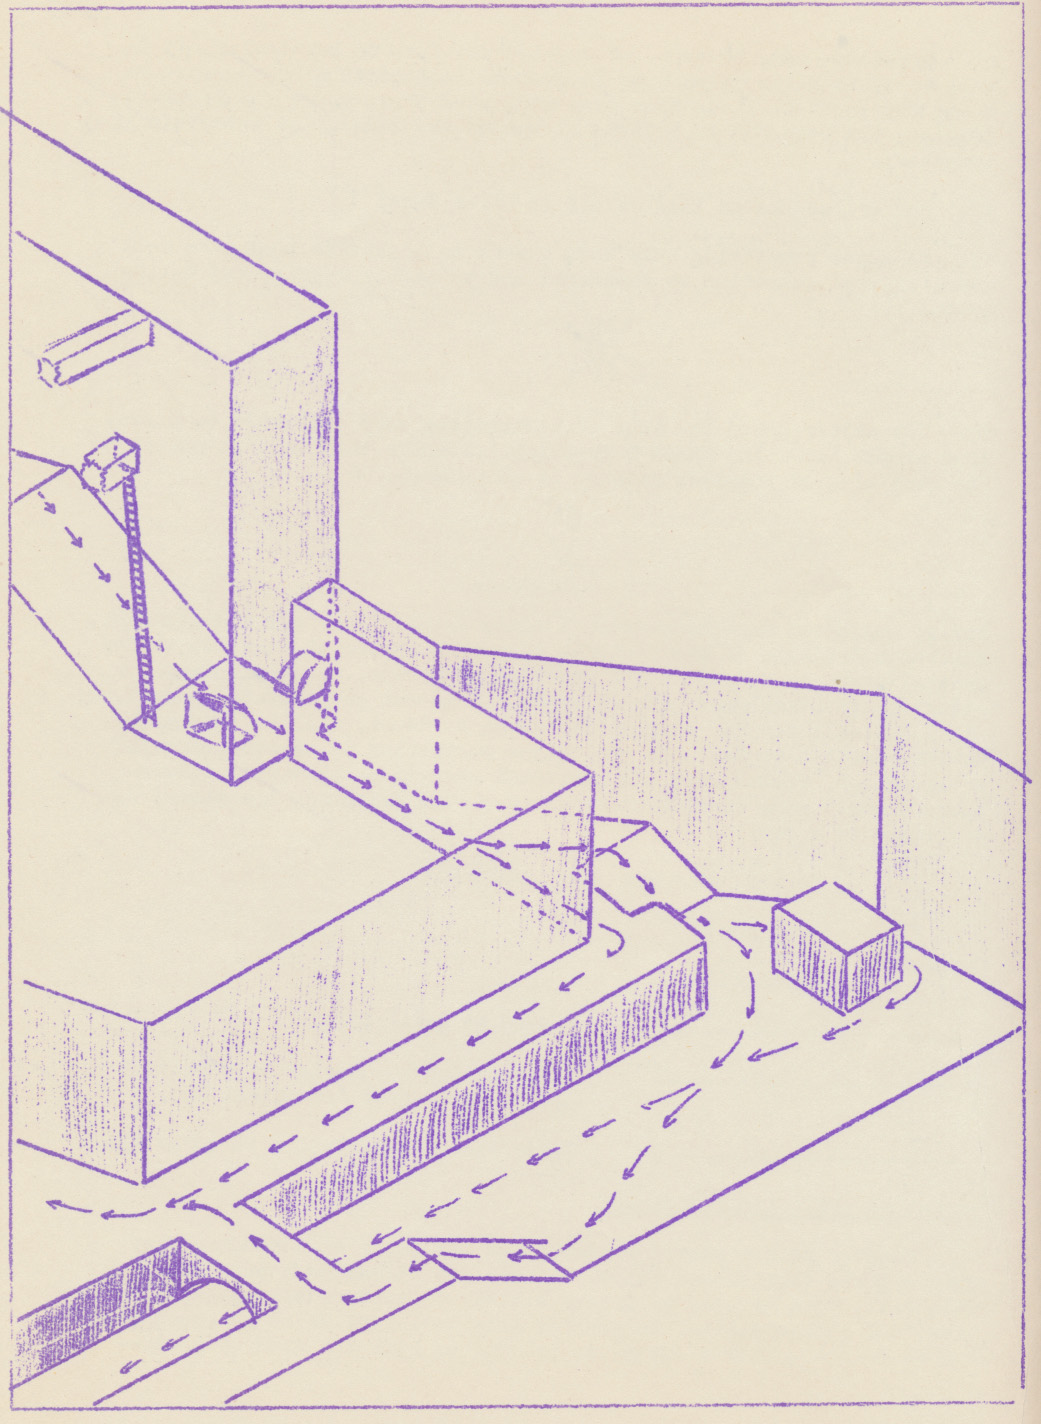 hight resolution of turning first to isometric techniques these may be divided into two basic types which the writer has called the isometric section and the isometric diagram